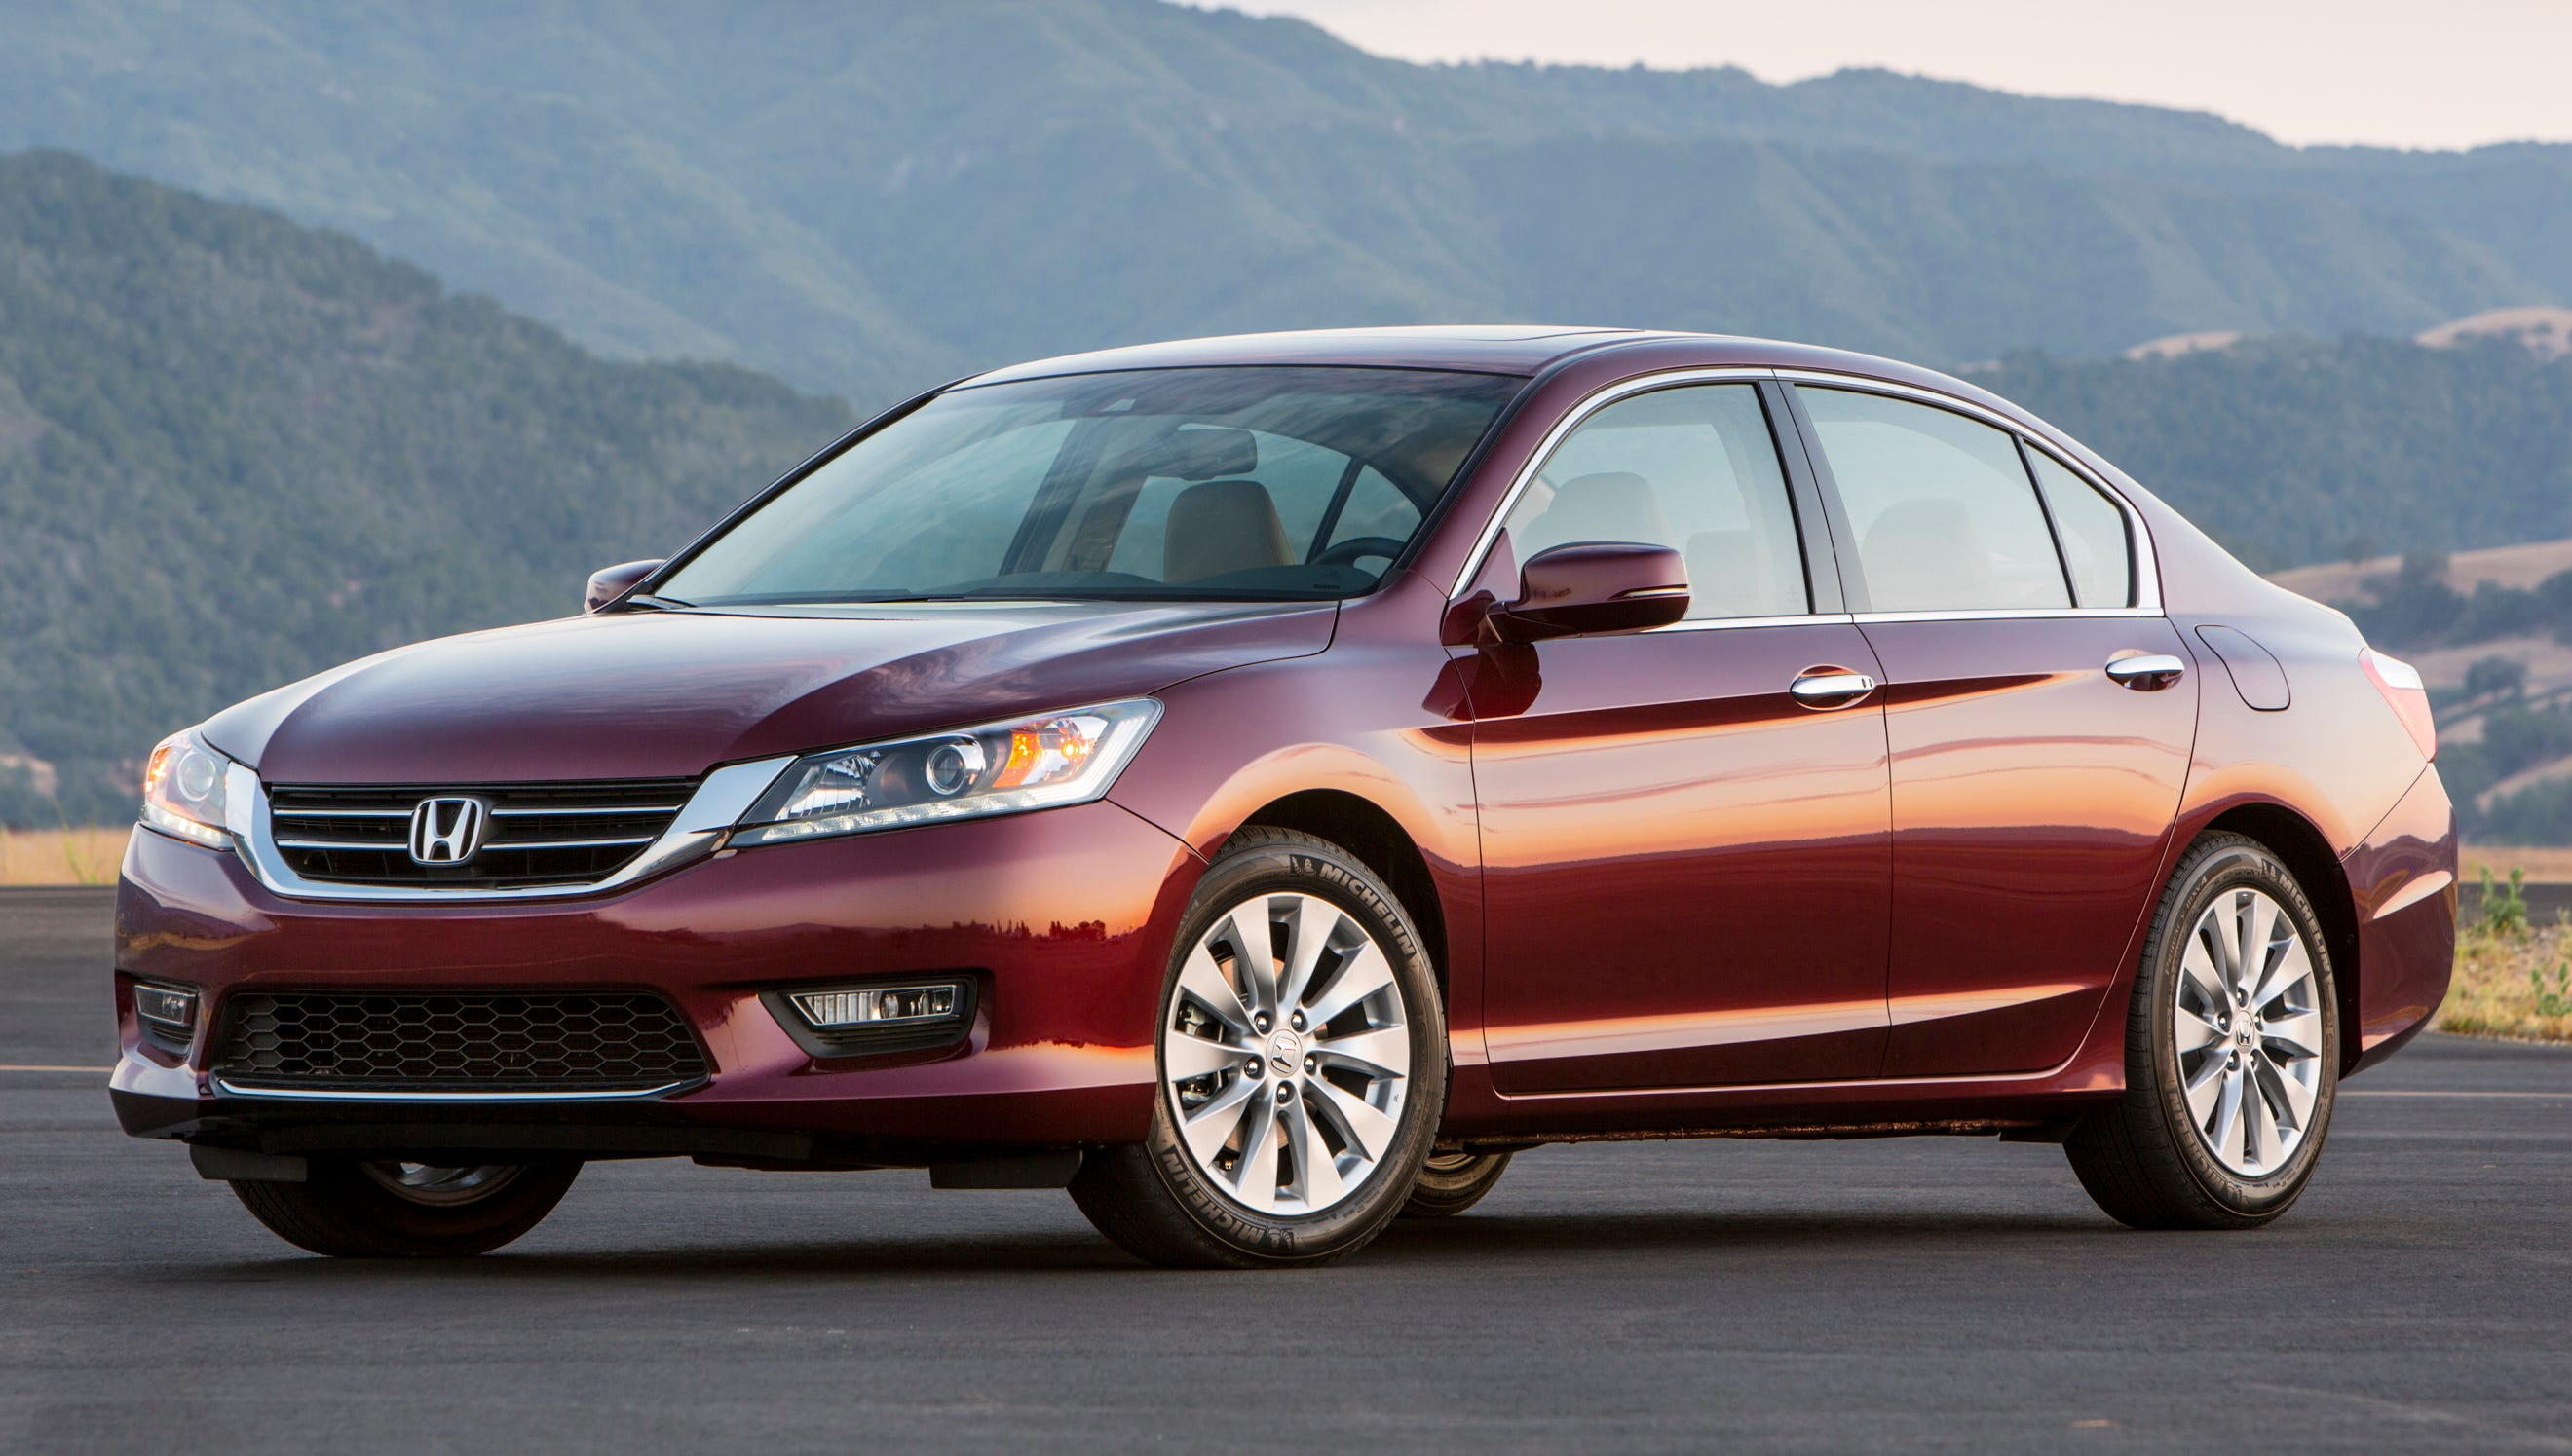 This year's Edmunds.com Top 10 Best Cars for Short Drivers includes the popula Honda Accord sedan starting at $22,479 (a 2013 Honda Accord EX-L V-6 sedan shown here).